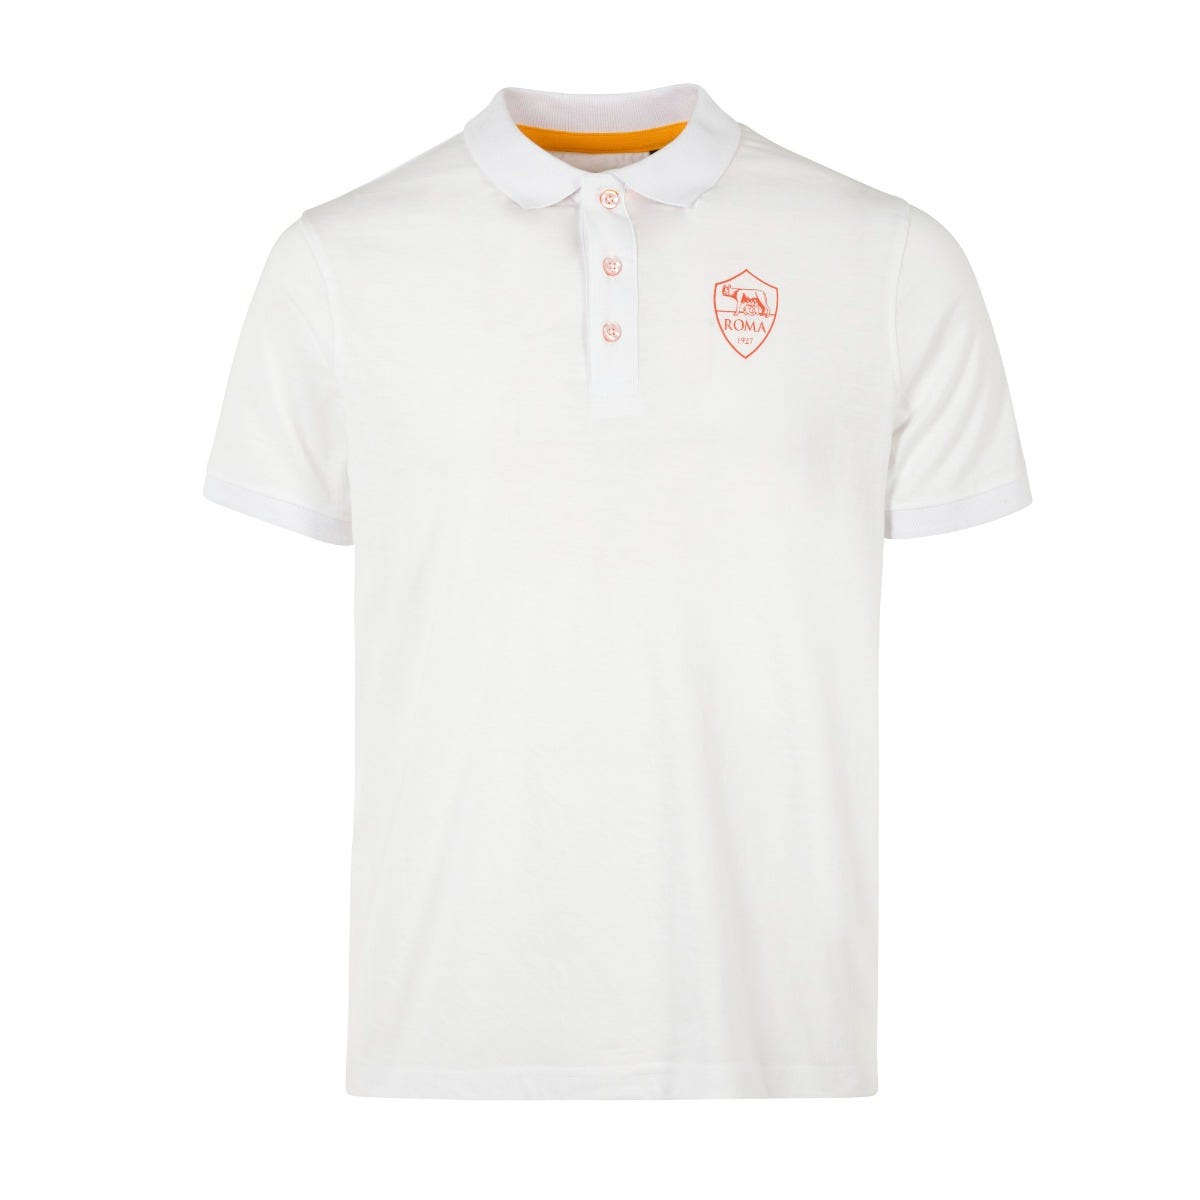 T-shirts and Polo Shirts for Men - Apparel - AS Roma Store